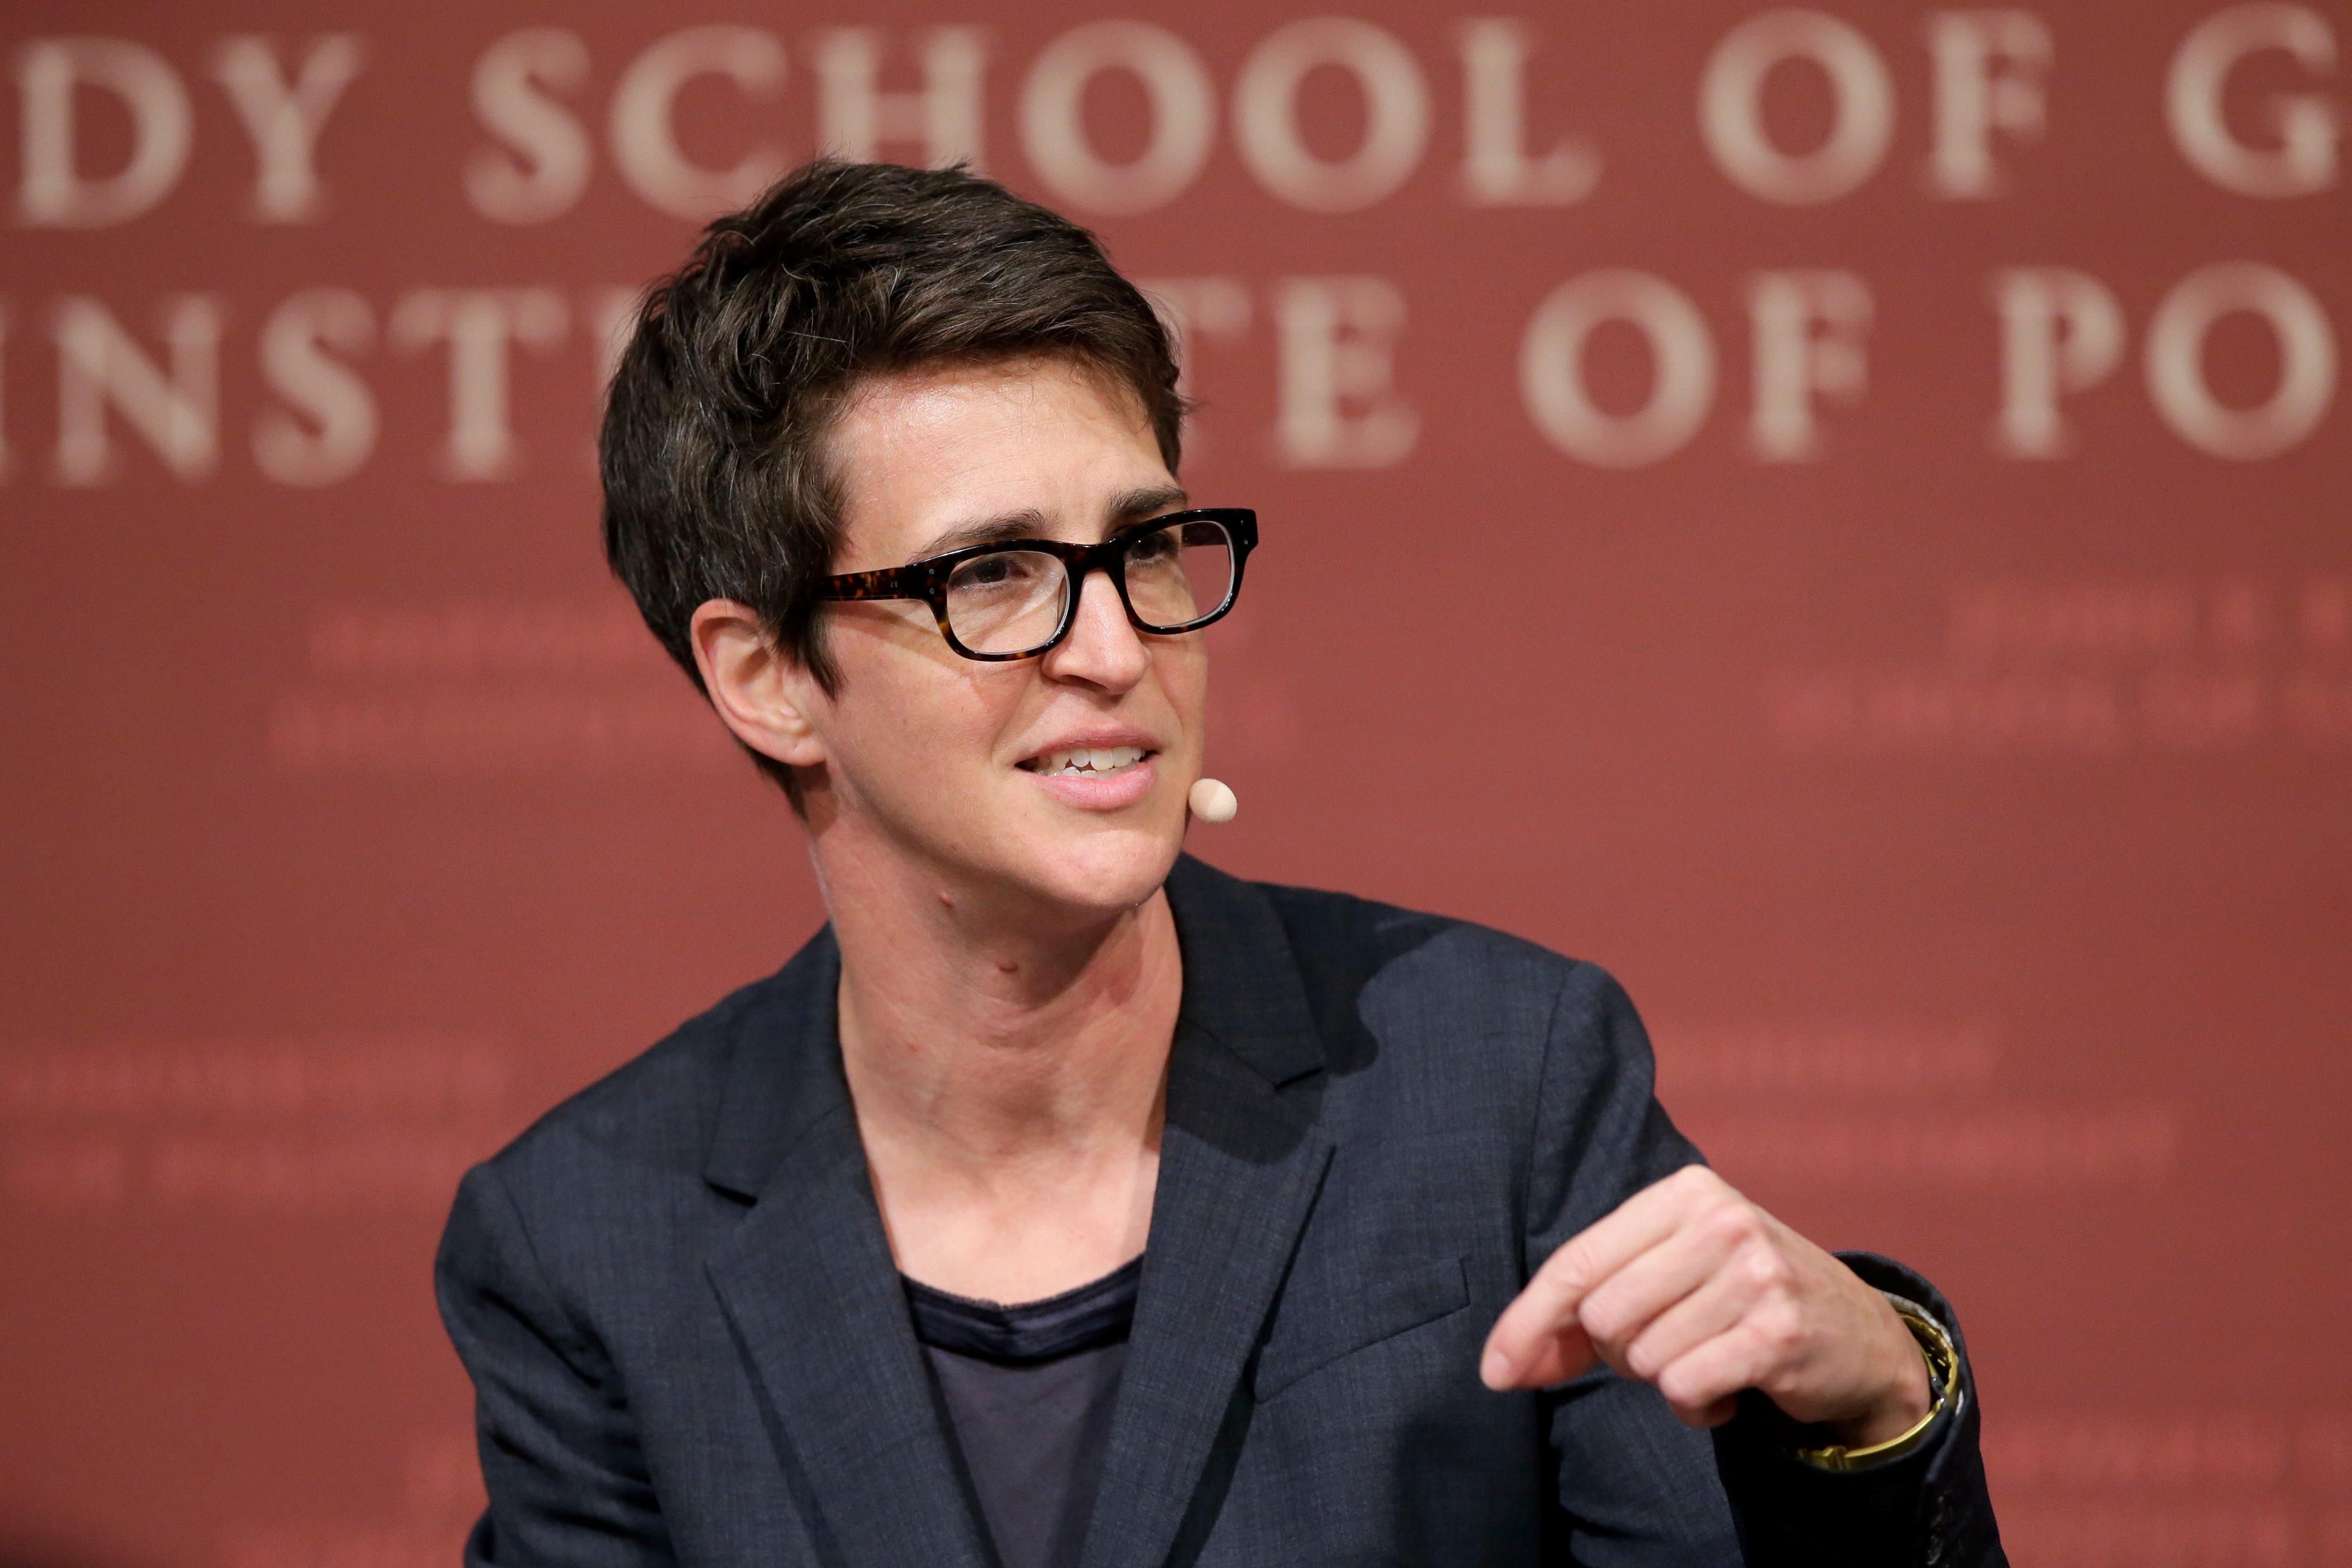 Rachel Maddow Thought Her Partner's COVID Battle 'Might Kill Her'